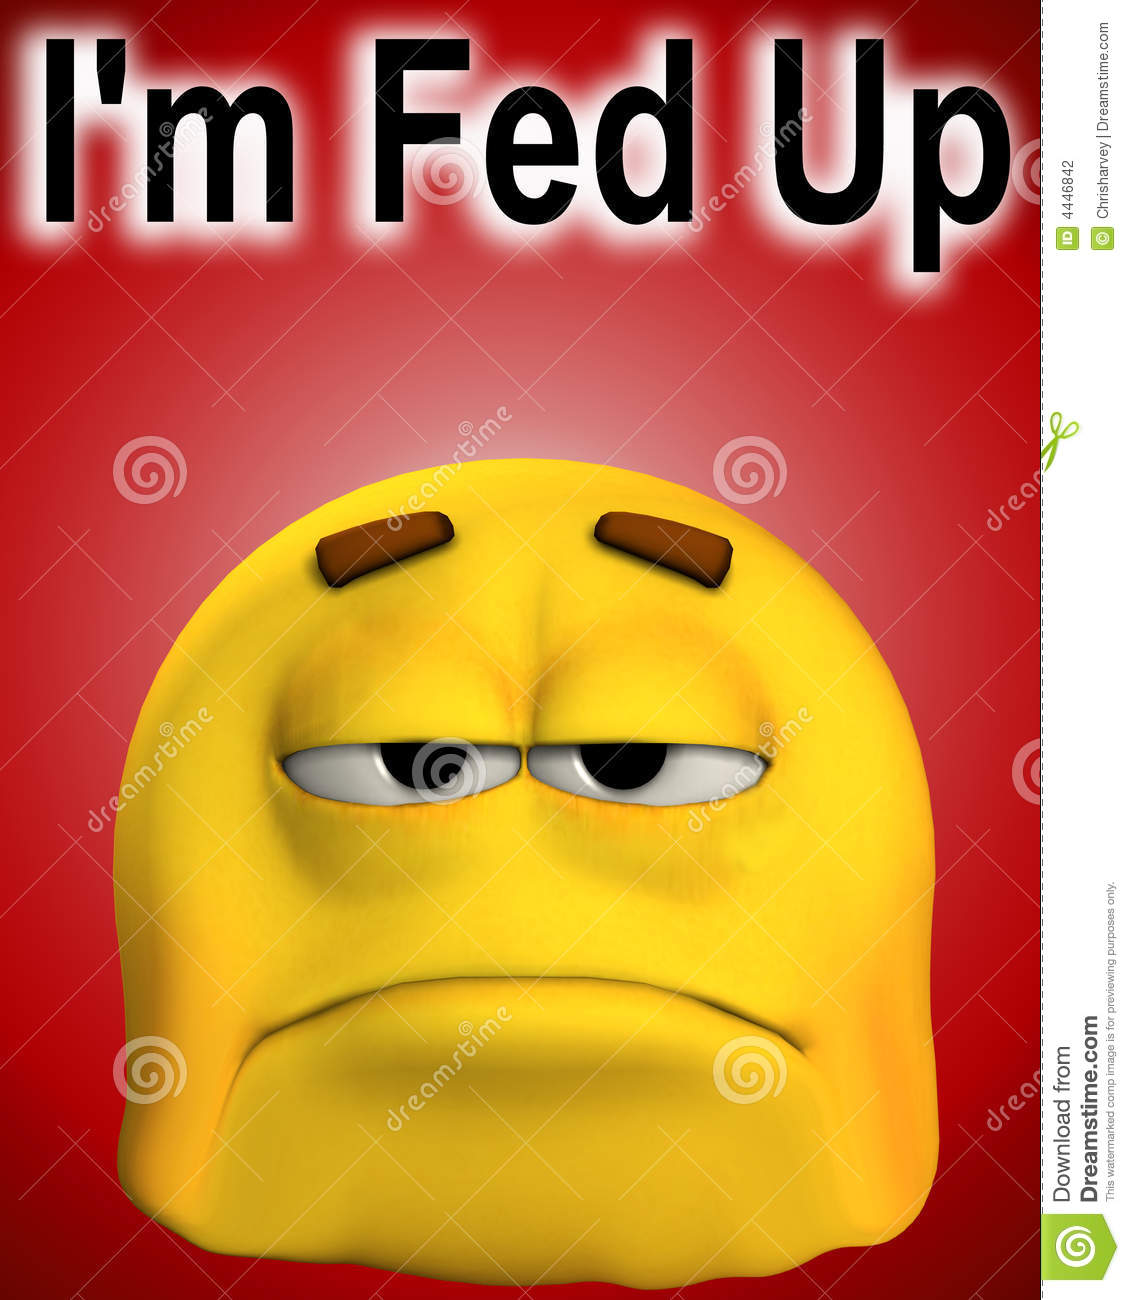 Download fed up 2014 movie.